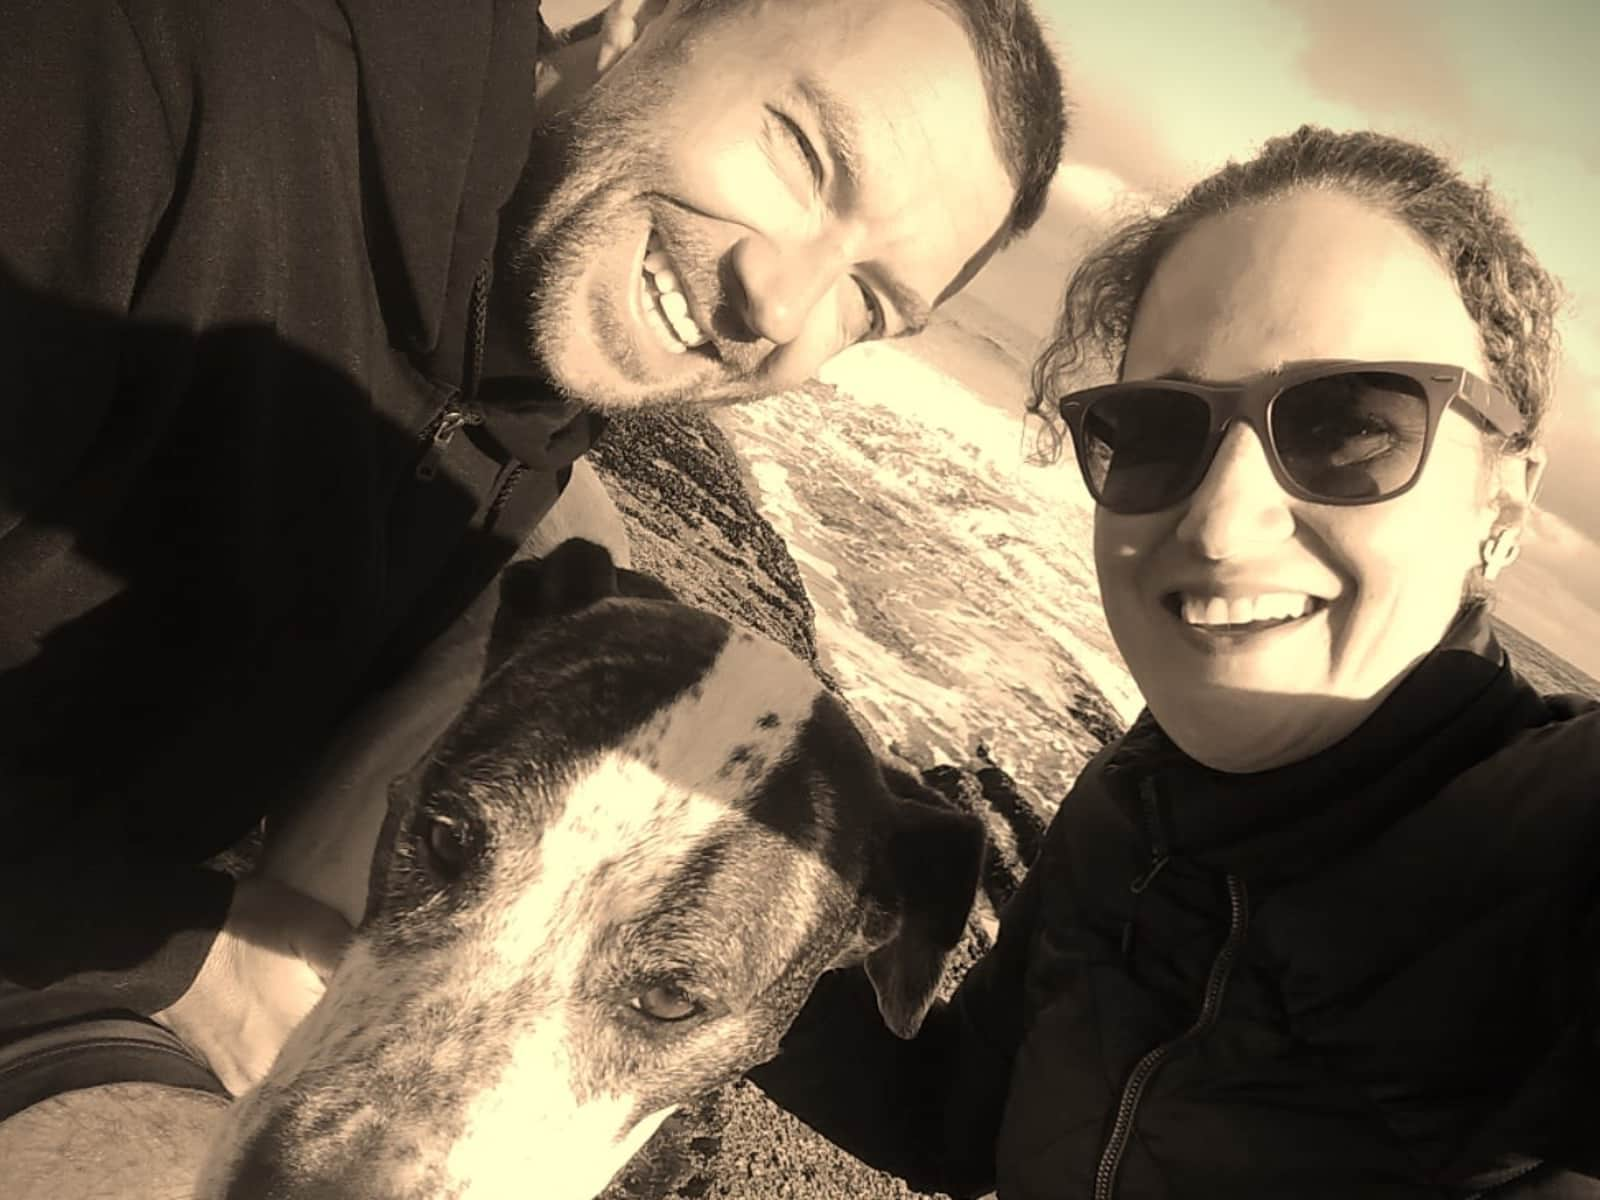 Alesha and andrew & Andrew from Baxter, Victoria, Australia